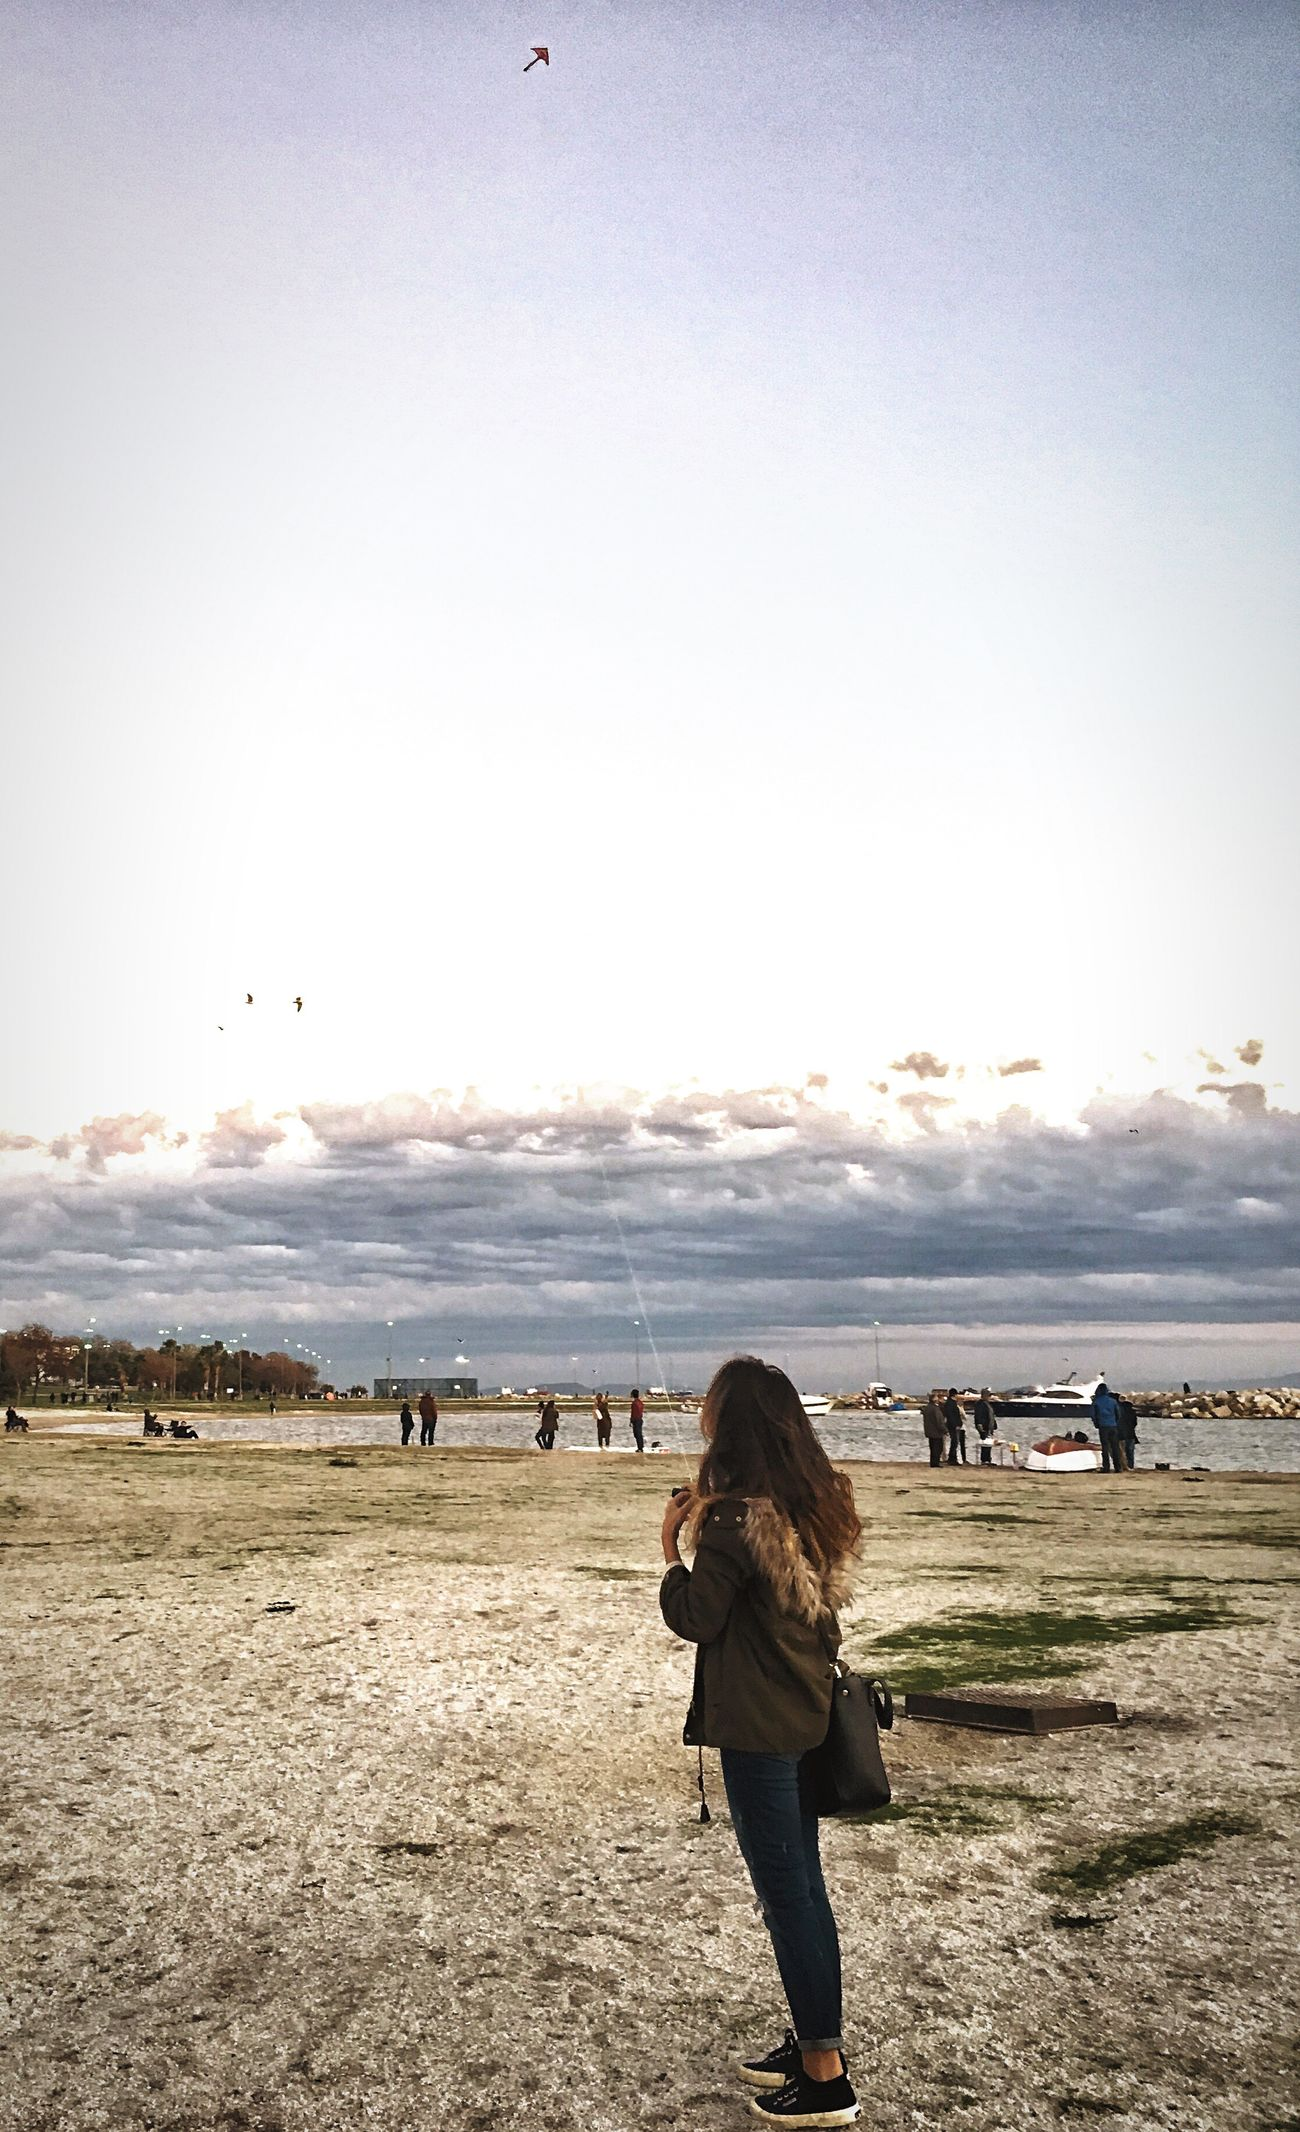 Nature Real People Lifestyles Outdoors Walking Leisure Activity Rear View Clear Sky Beach Women Day Sky Nature Warm Clothing Beauty In Nature People Special Blue Sky Blue Kite Kitesurfing Kite Flying